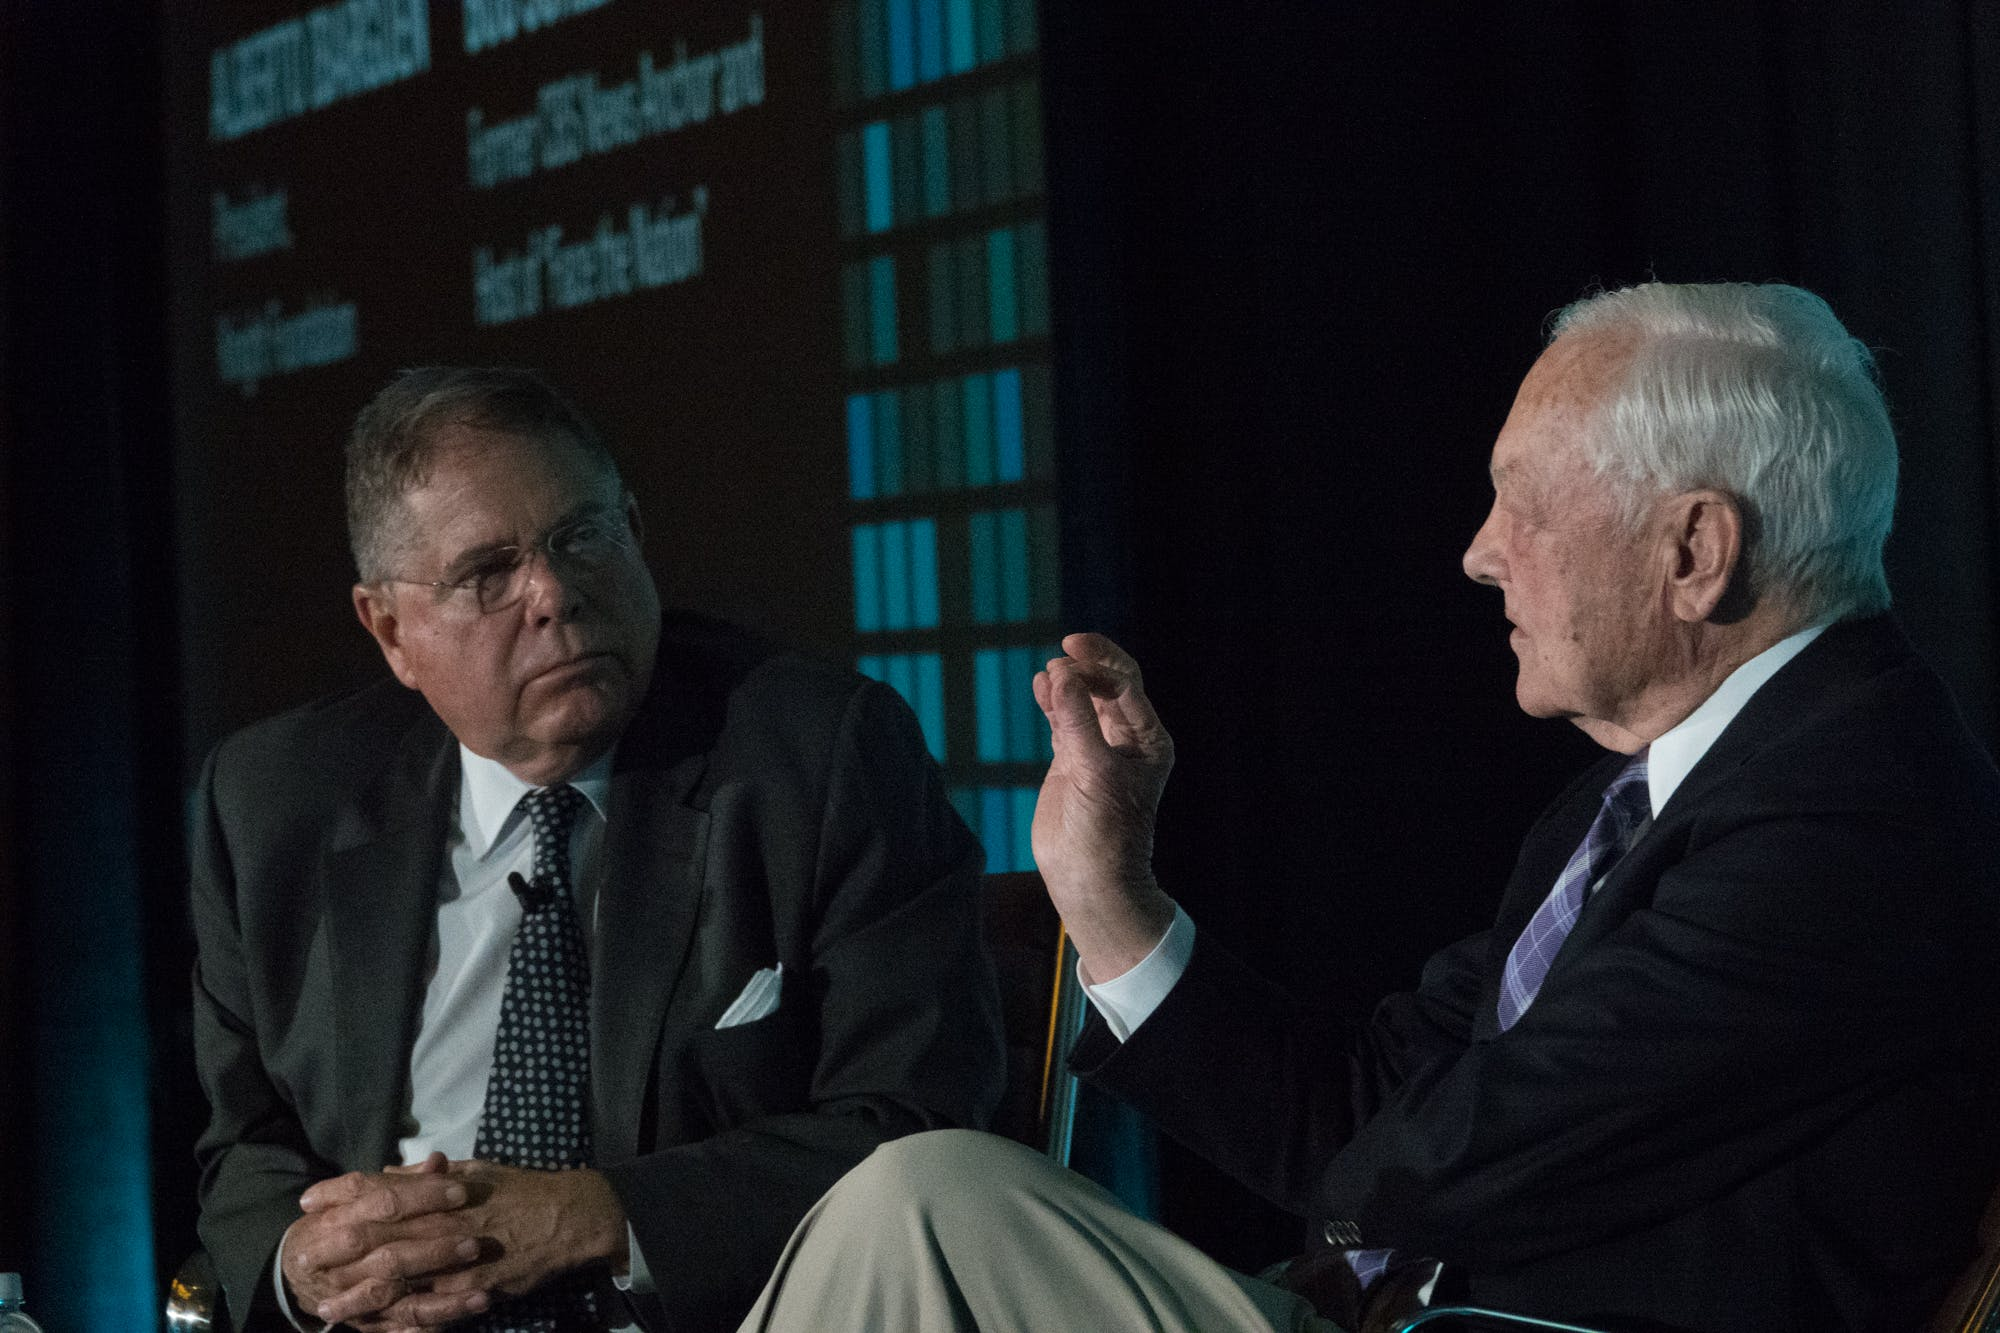 <p>Knight Foundation President Alberto Ibarg&uuml;en listens attentively as veteran newsman Bob Schieffer discusses other times in history when technological advancement was followed by a period of disruption. Photo: Angel Valentin</p>